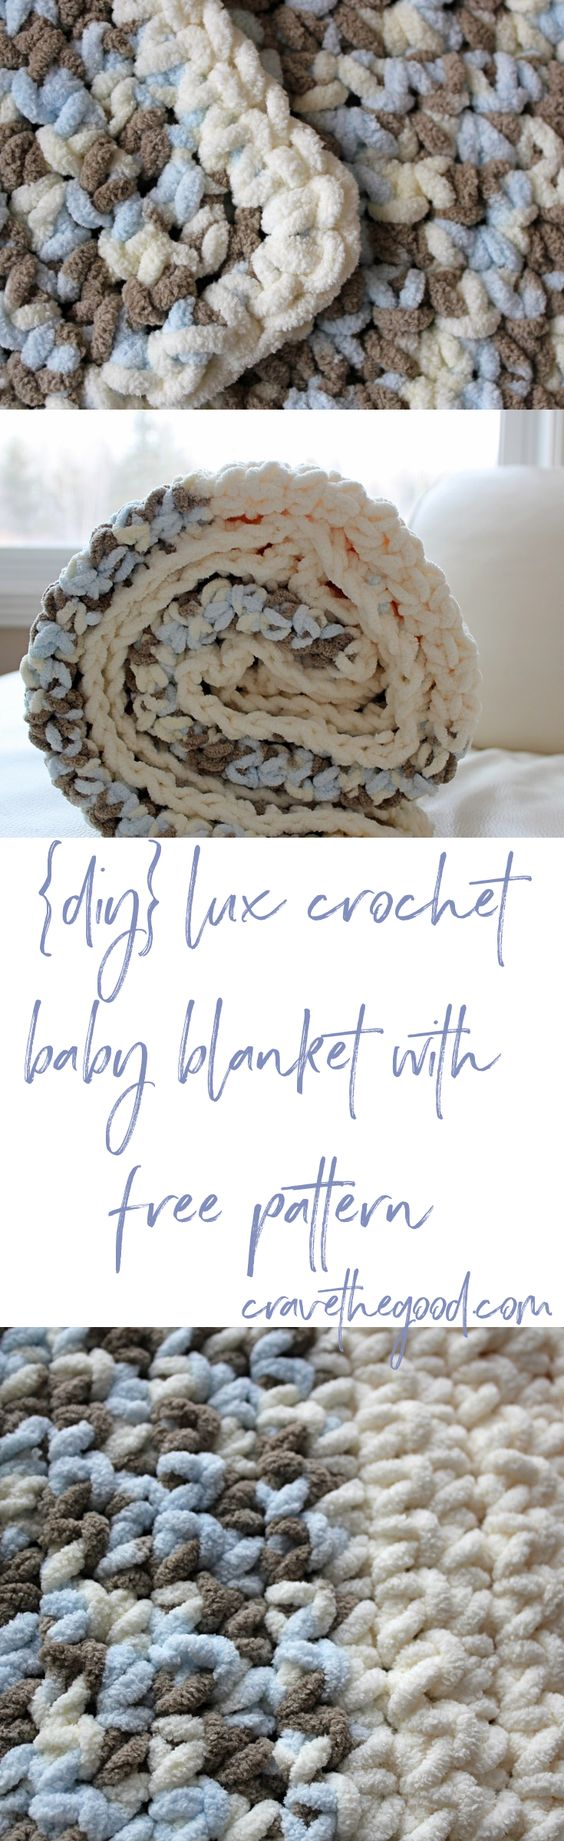 Lux Crochet Baby Blanket With Free Pattern.